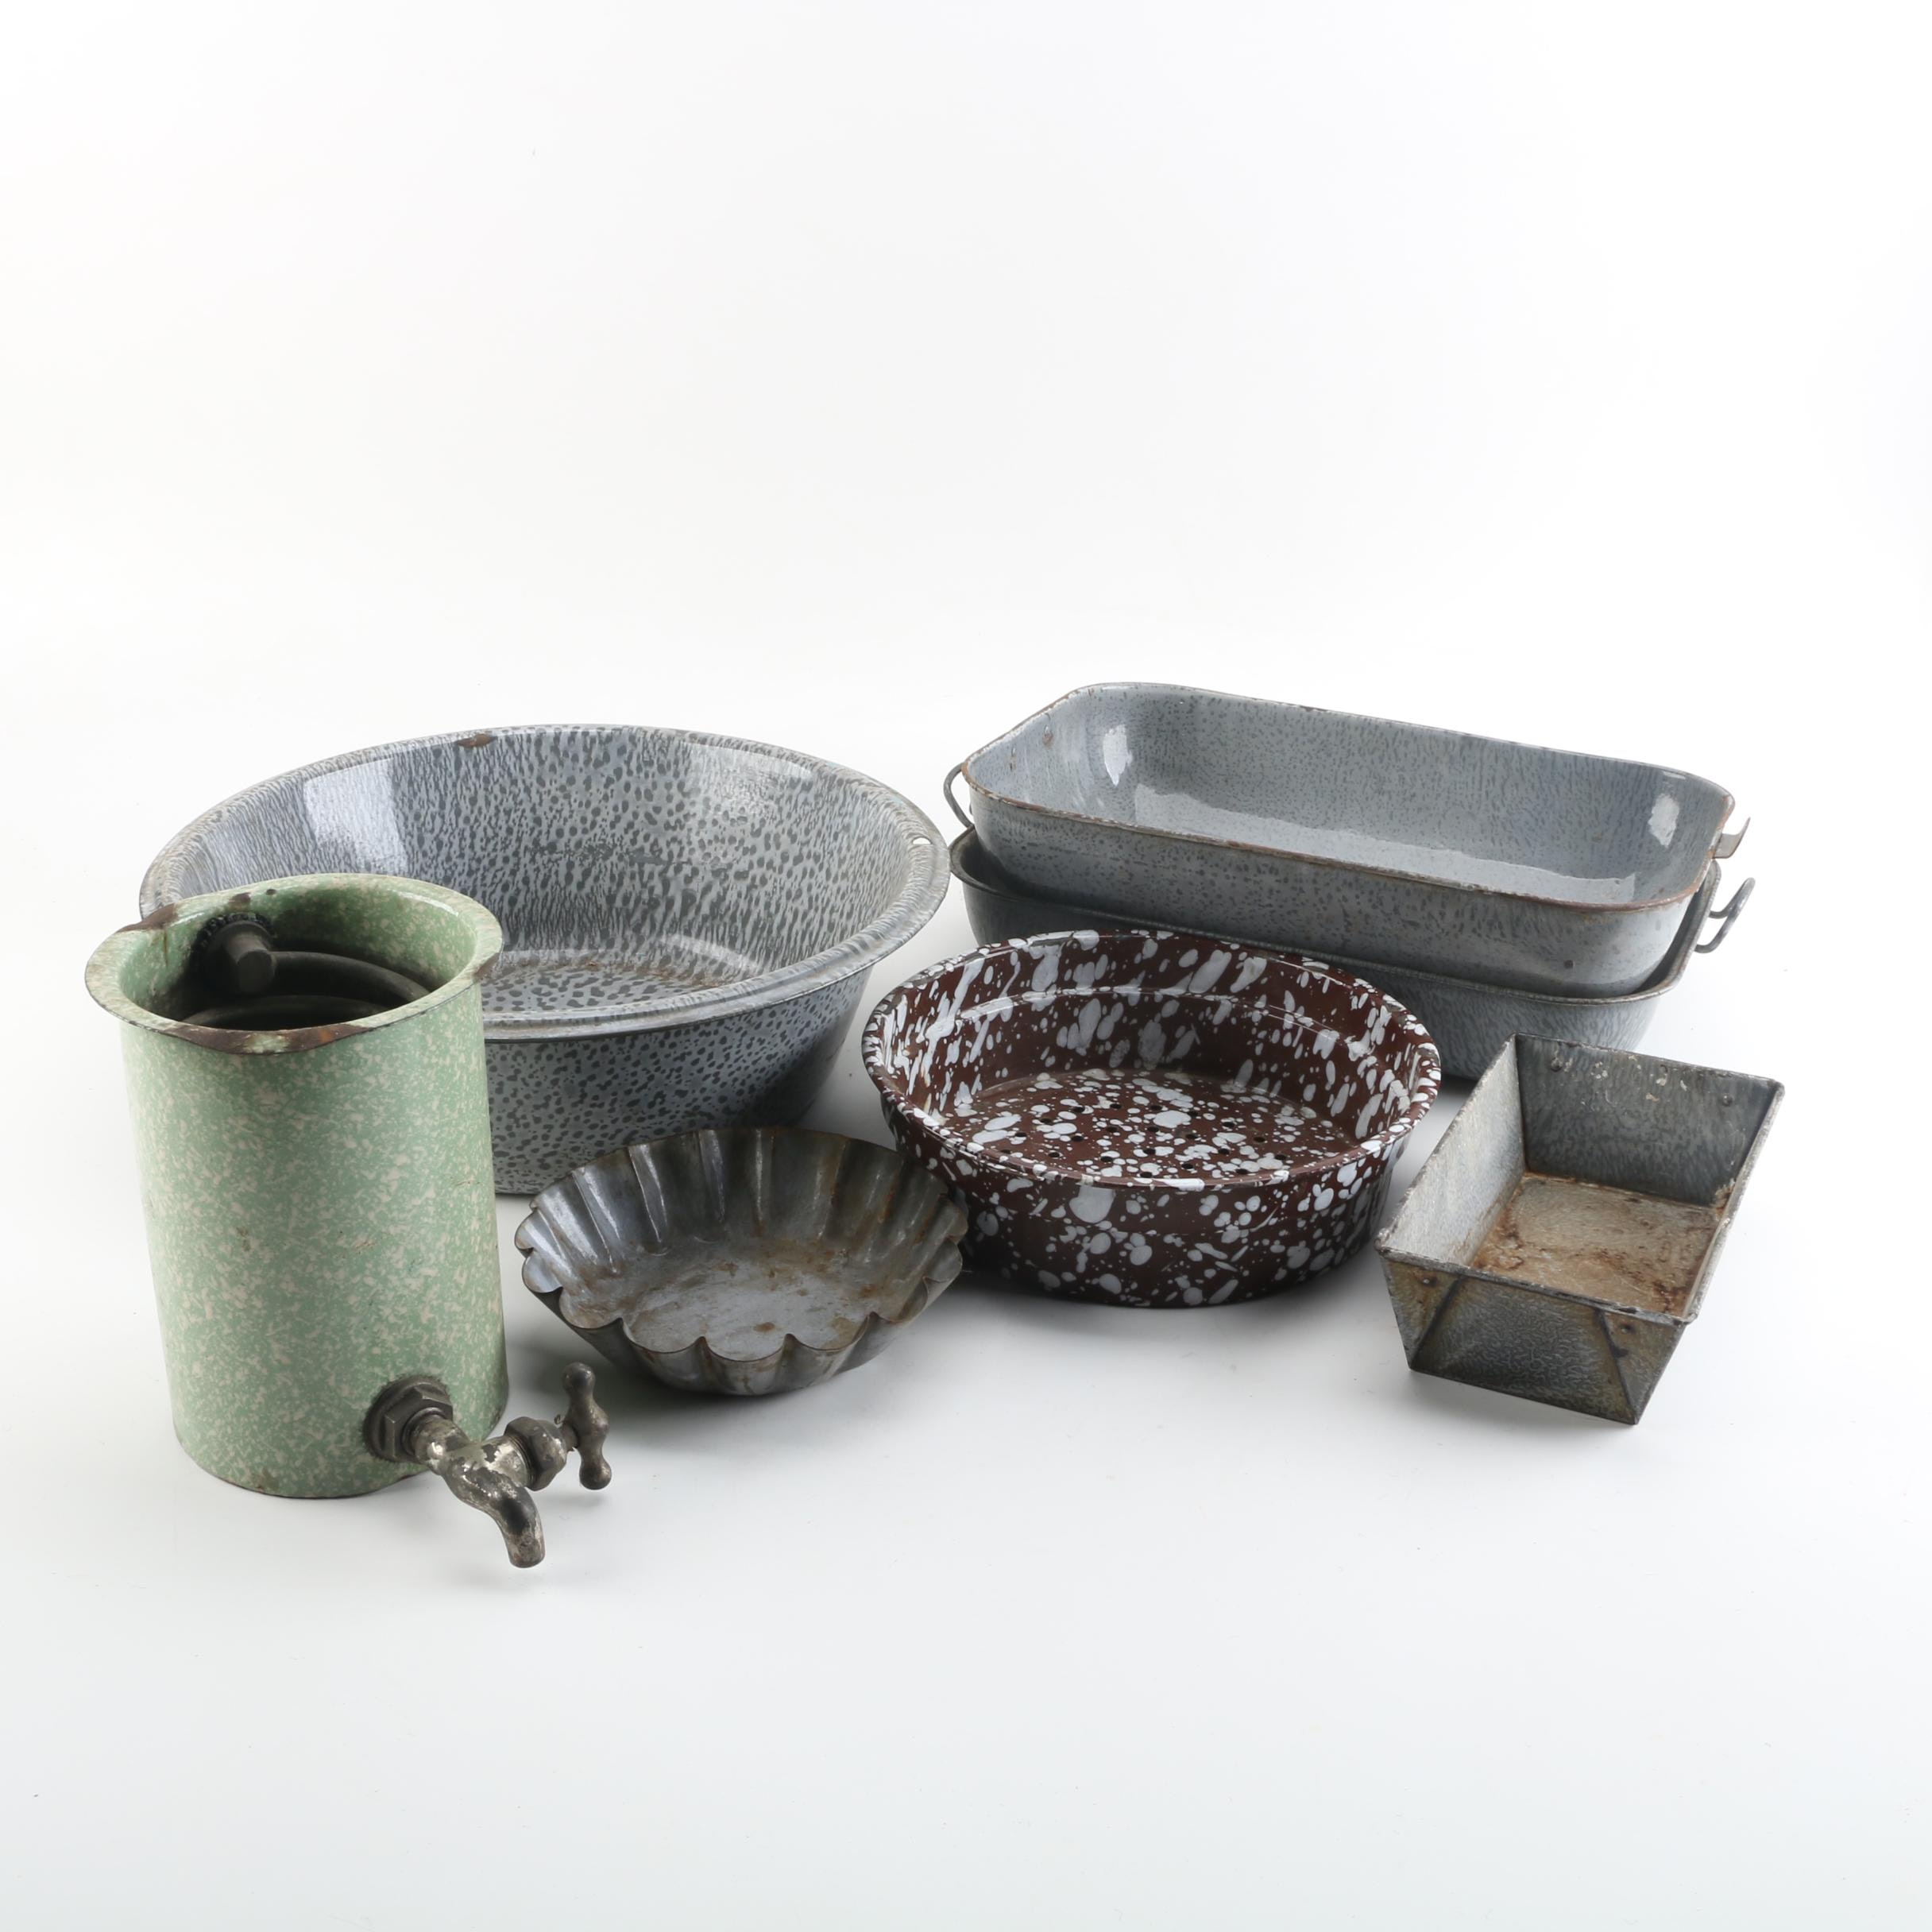 Metal and Enamel Camping Cookware